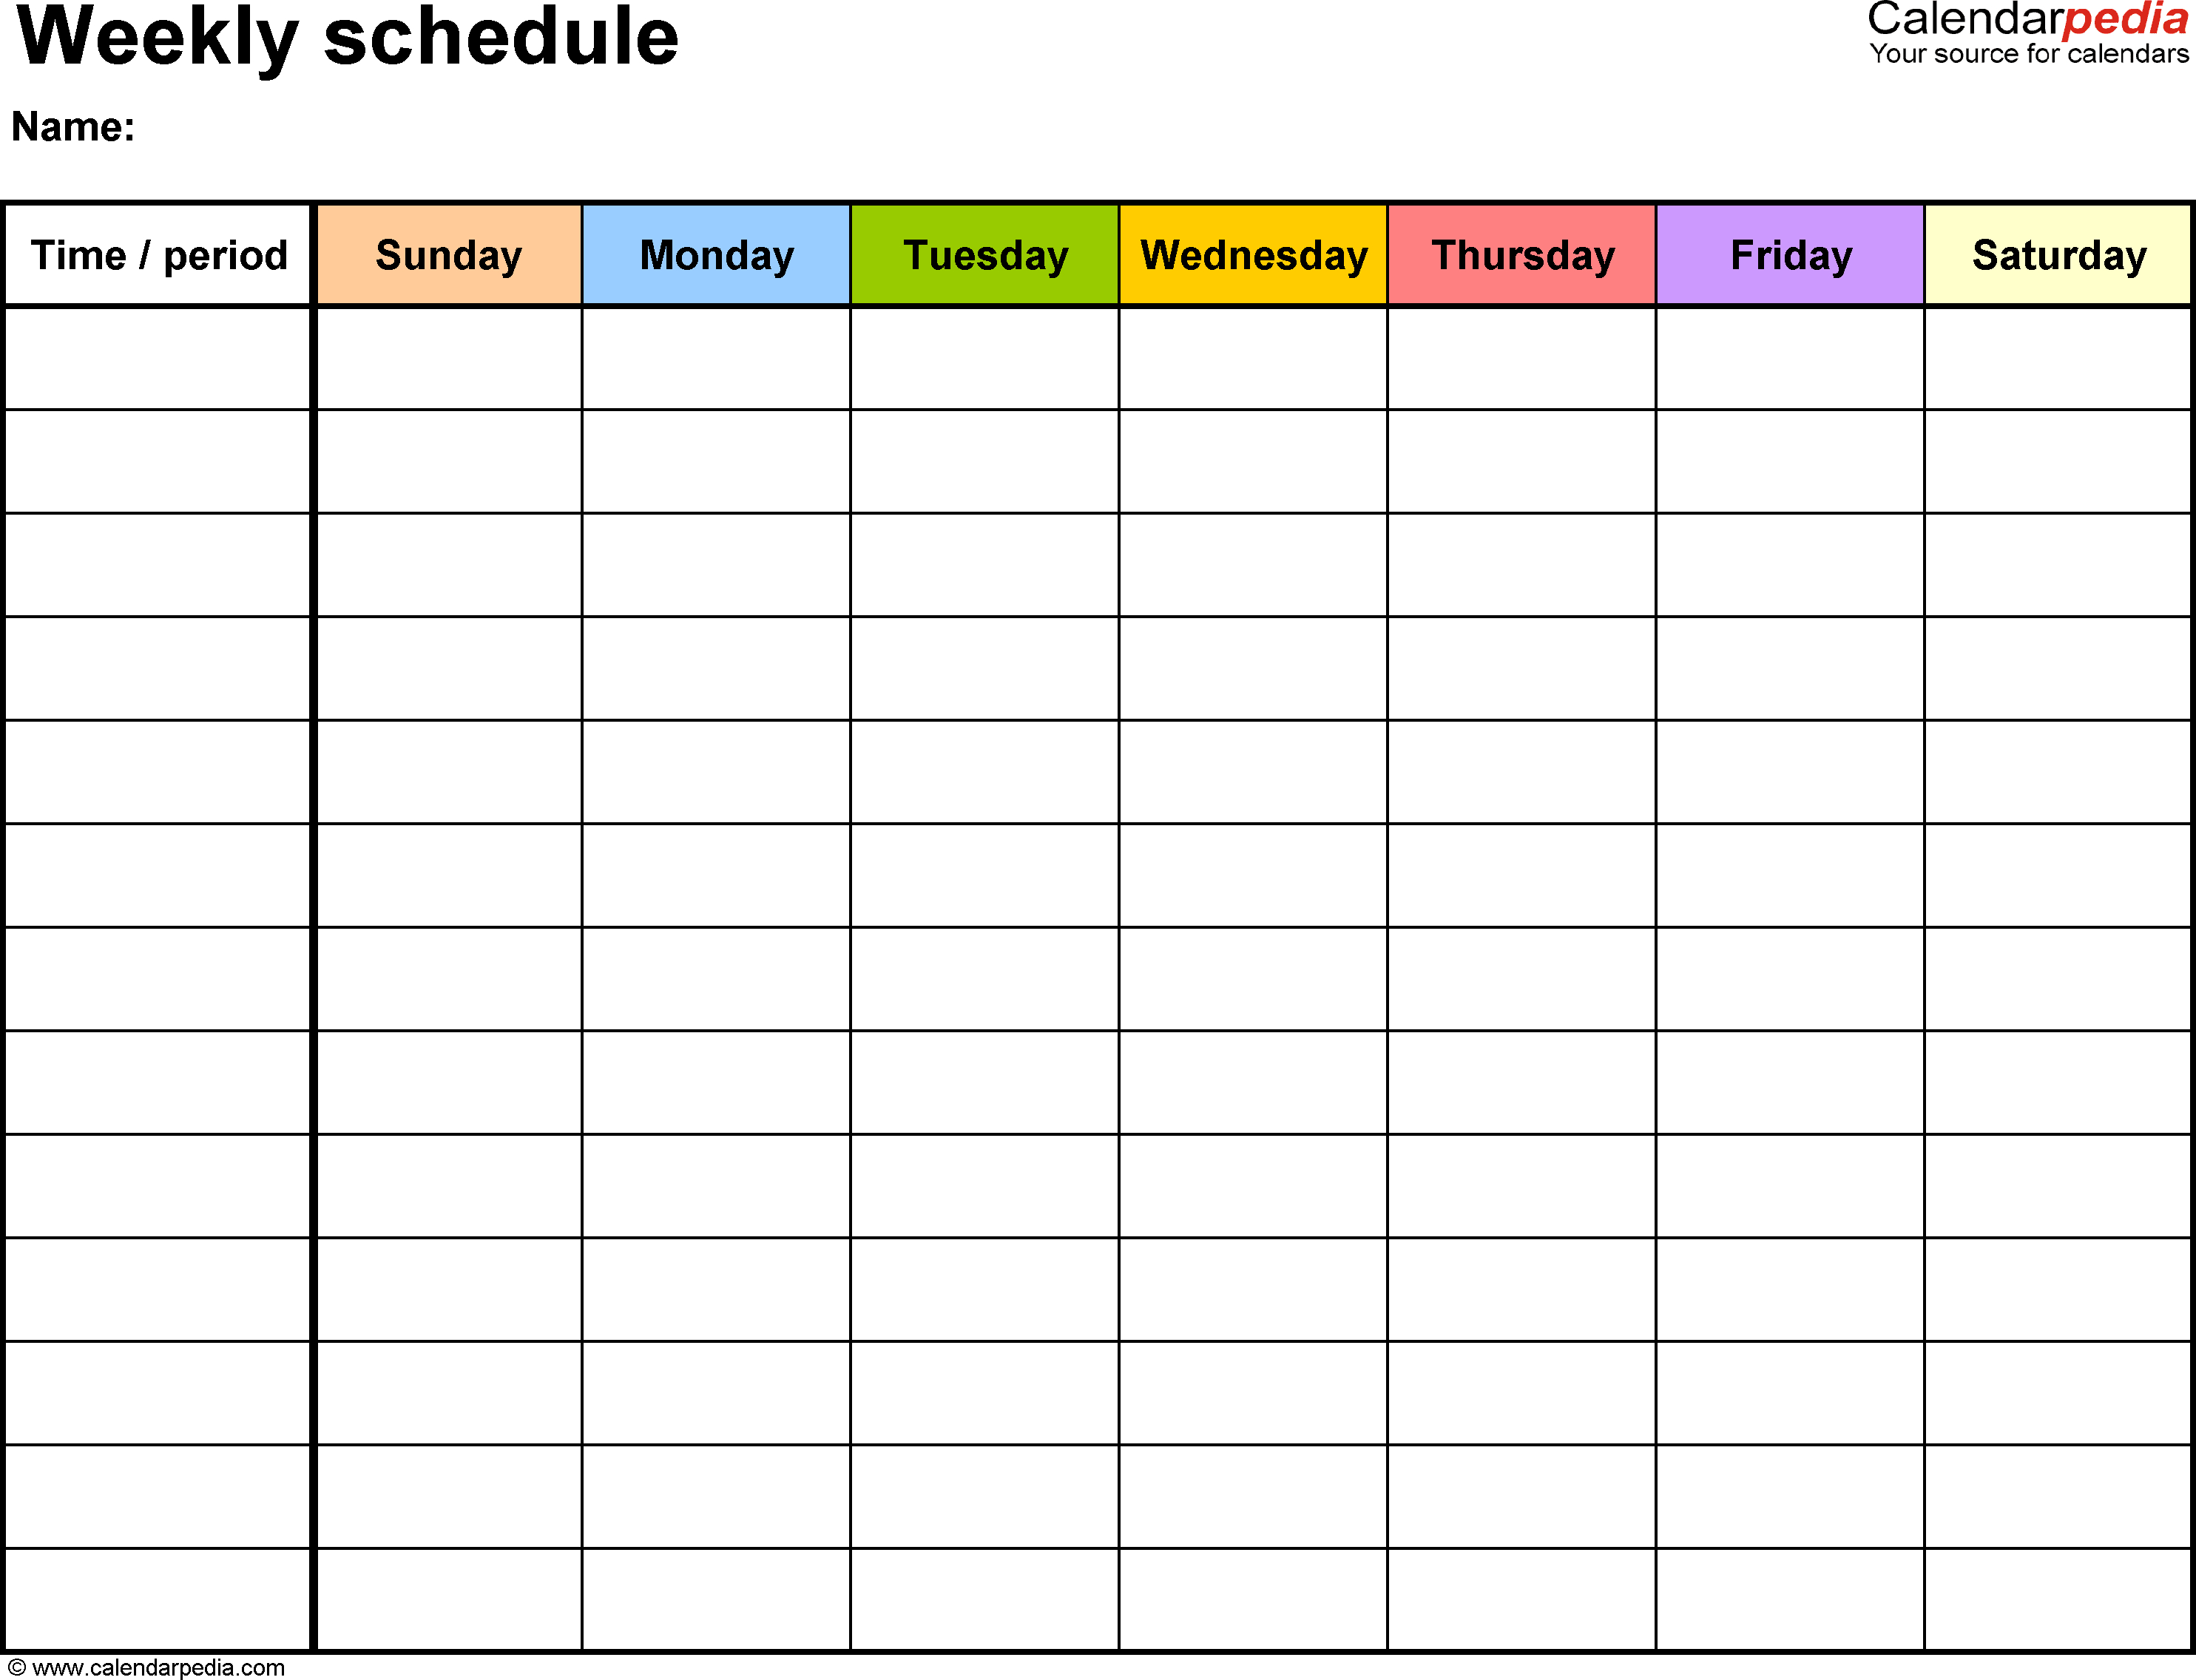 Weekly Schedule Template For Word Version 13: Landscape, 1 Page for Free Printable Weekly Calendar Templates